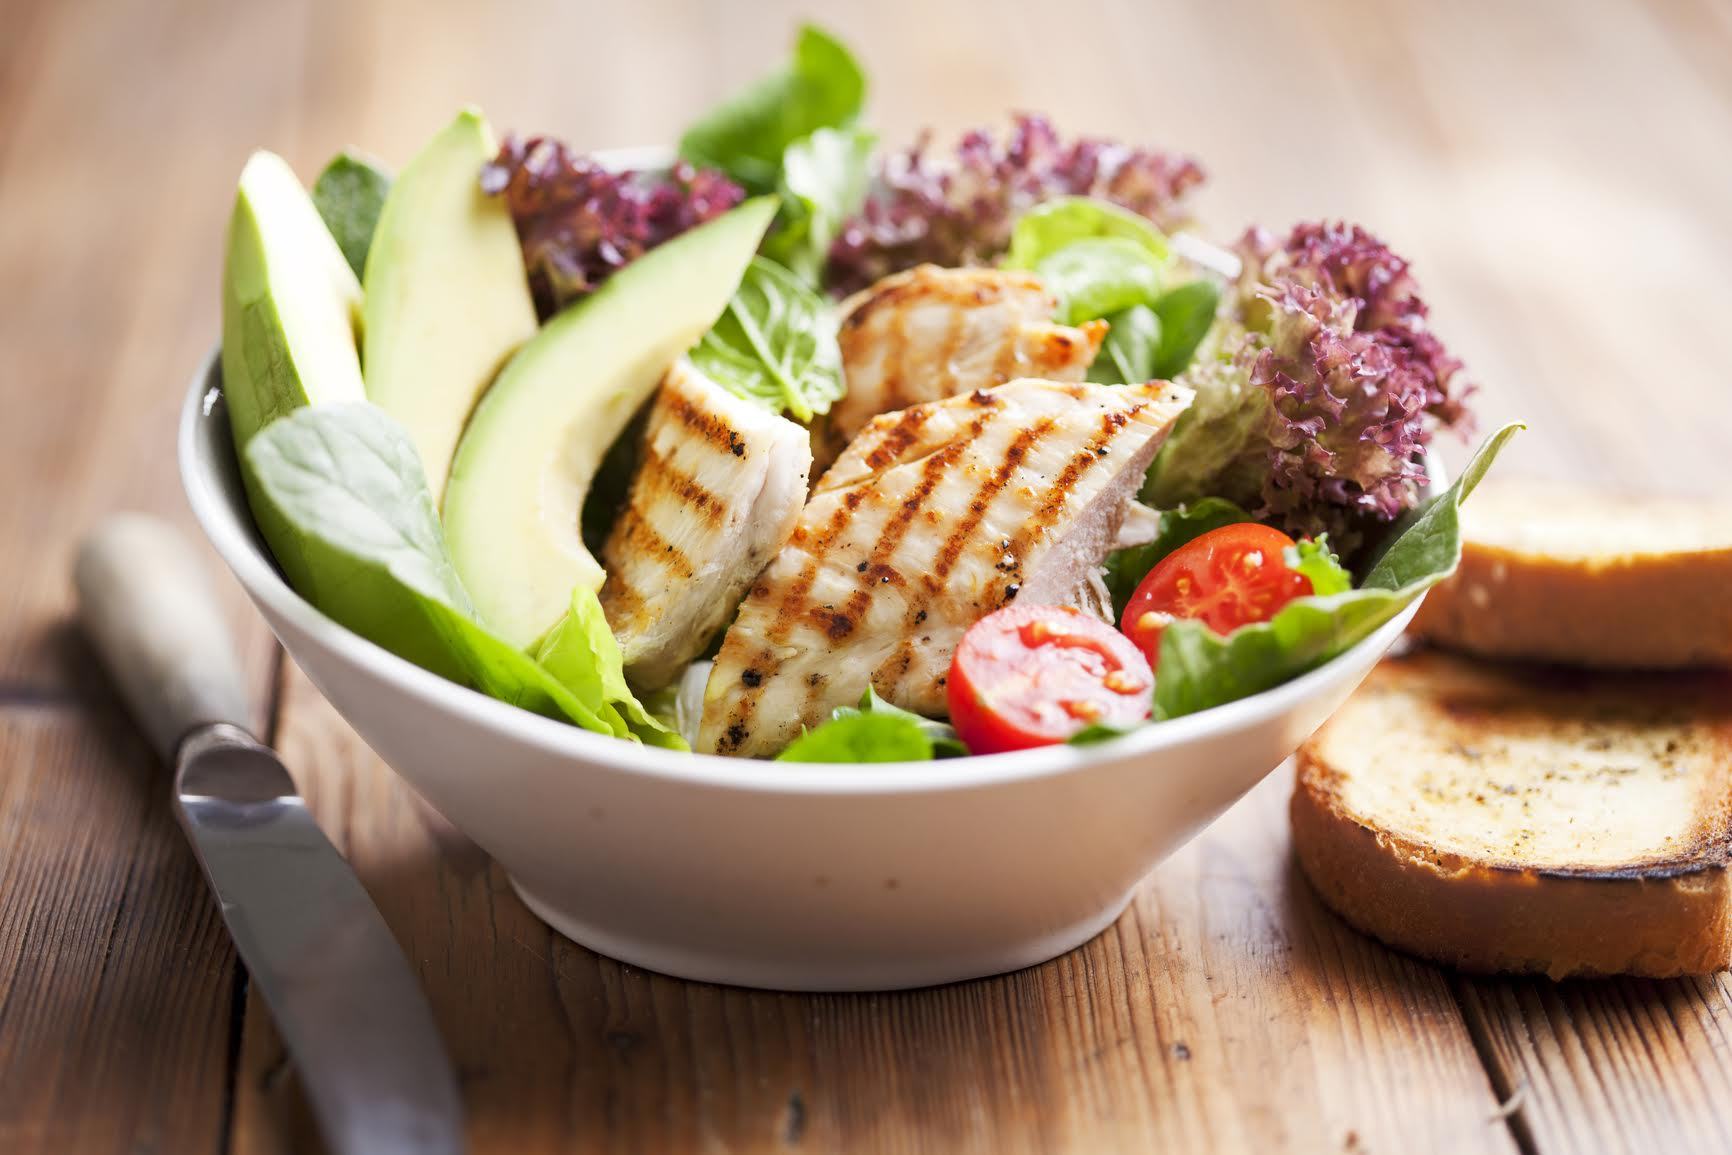 Chicken salad w/avocado and tomatoes